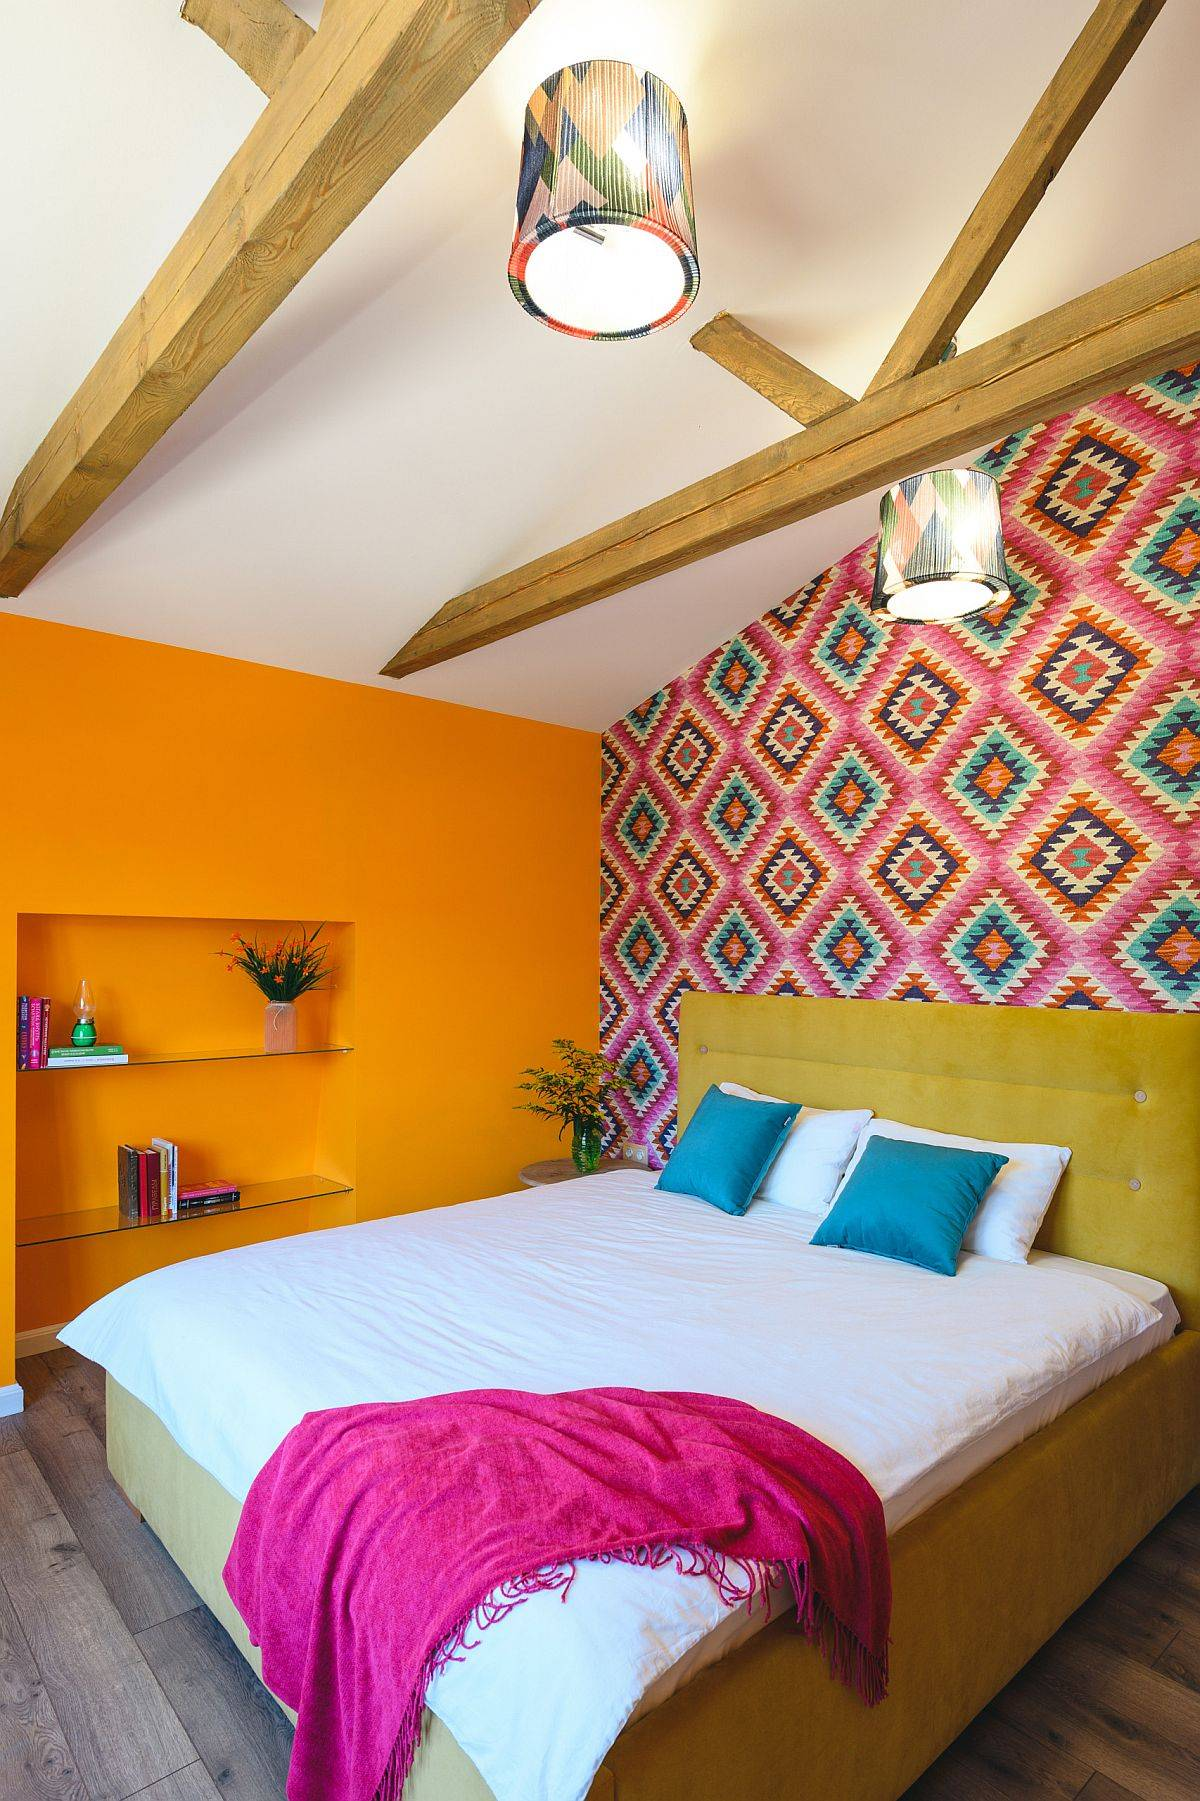 Bright-orange-and-pattern-filled-pink-wall-make-an-impression-in-this-small-bedroom-96931